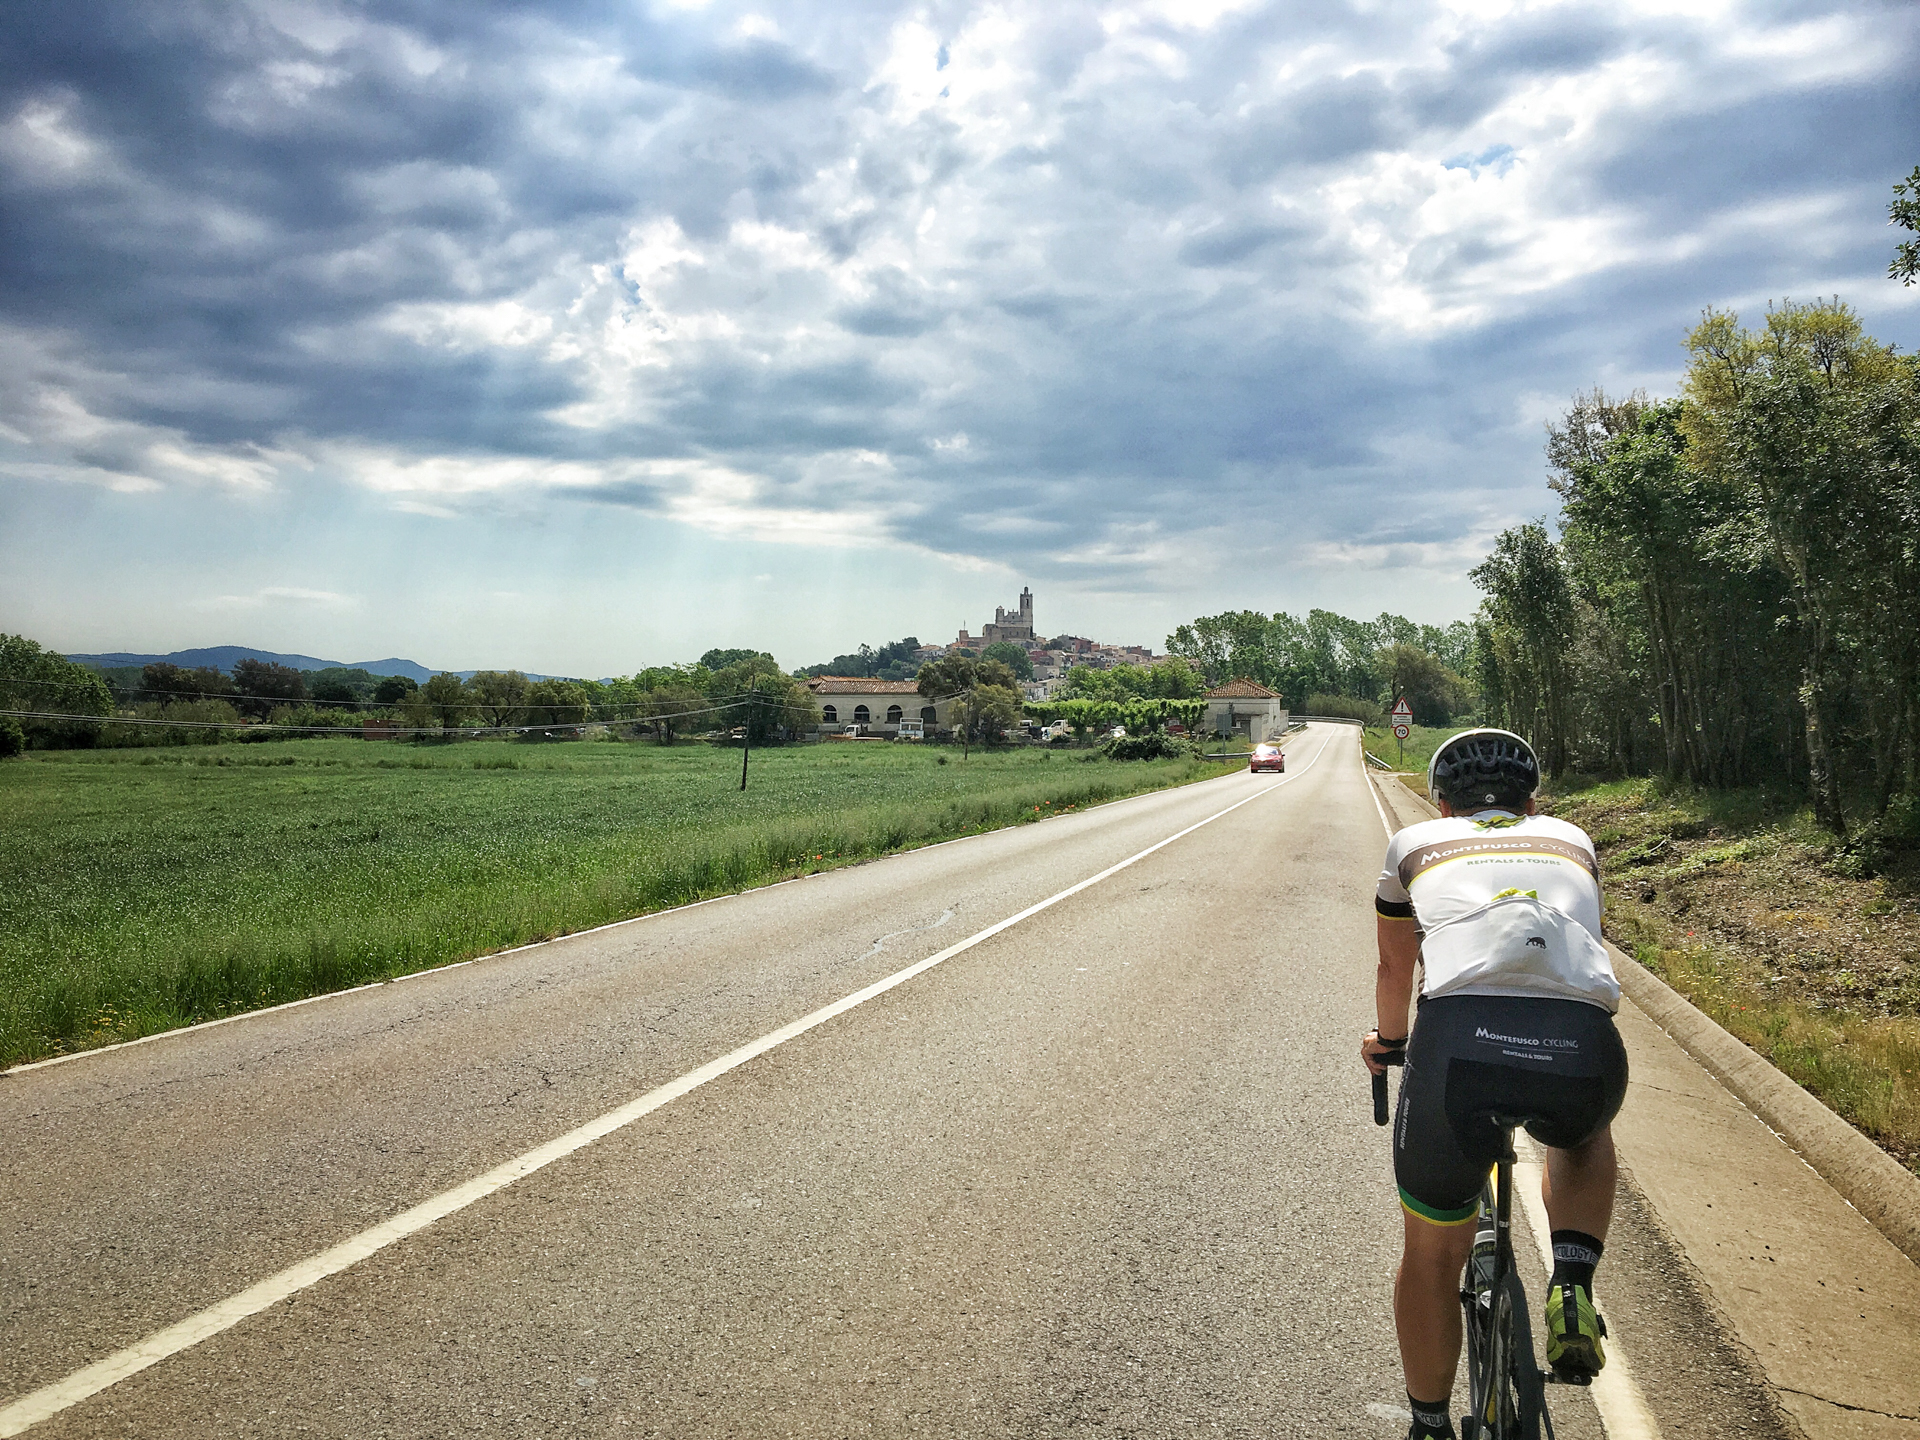 Riding towards the first village we passed through, Llagostera.